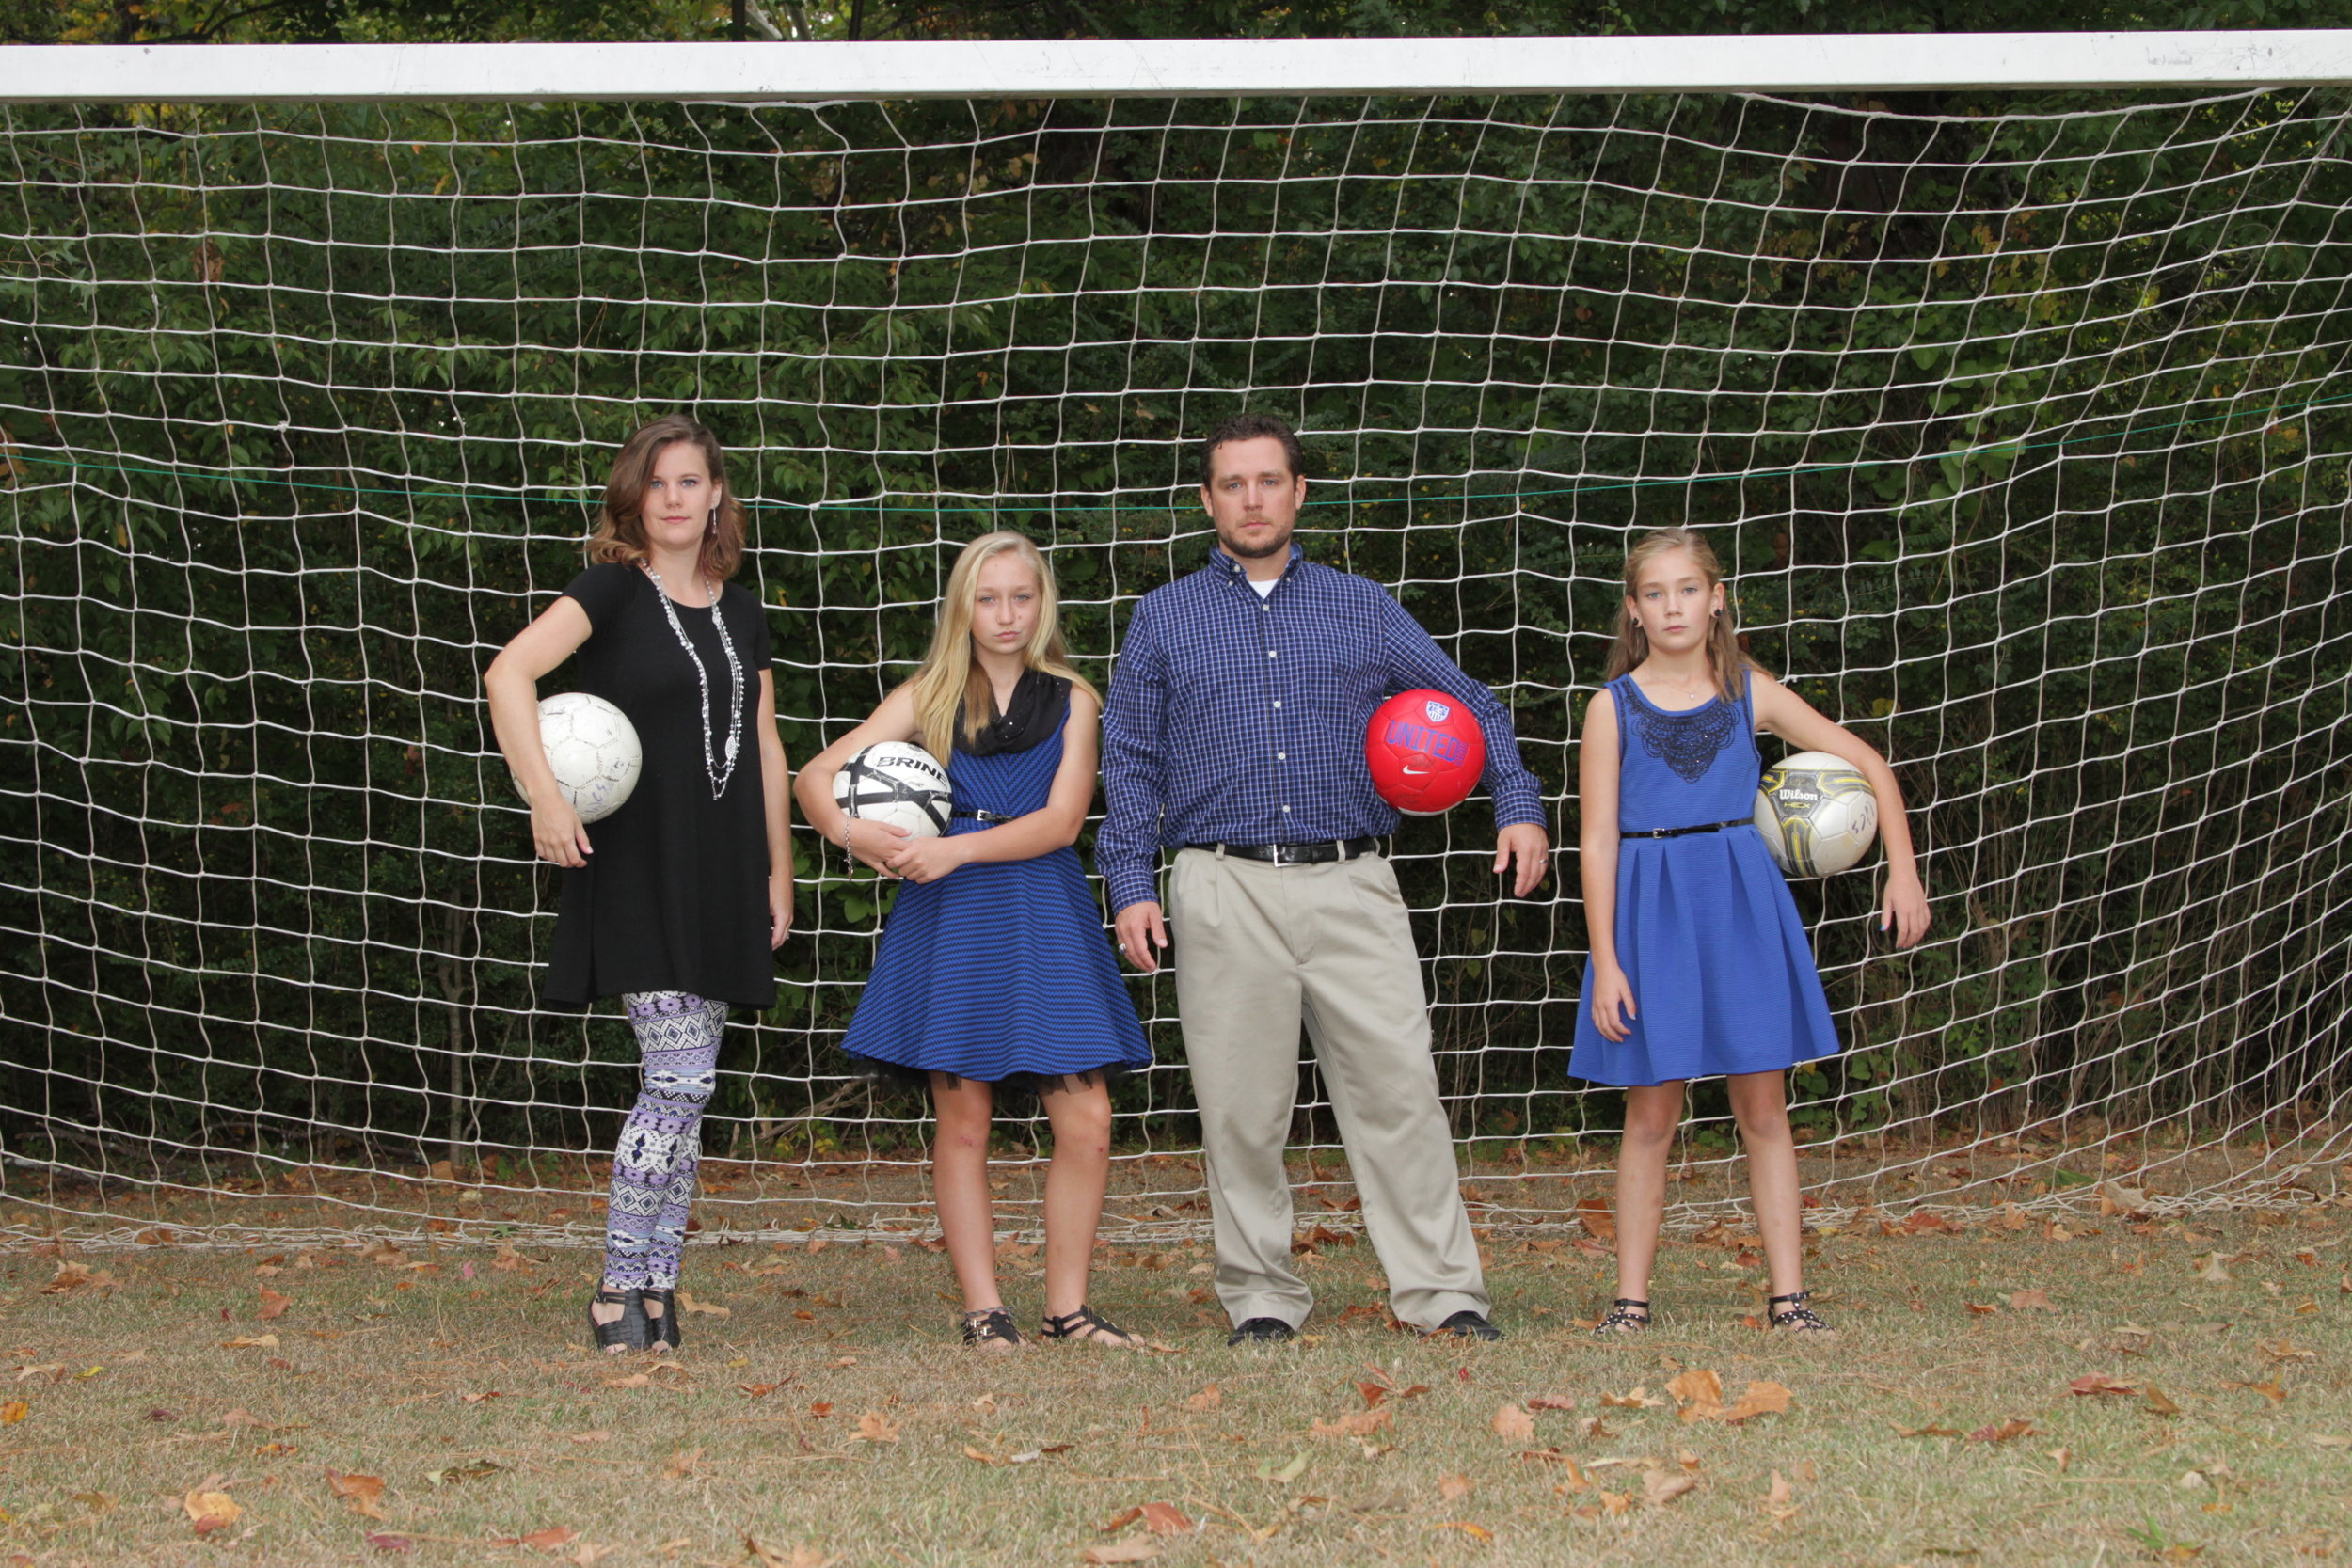 One of my favorite family pictures: mean-mugging with the soccer balls in front of a goal!